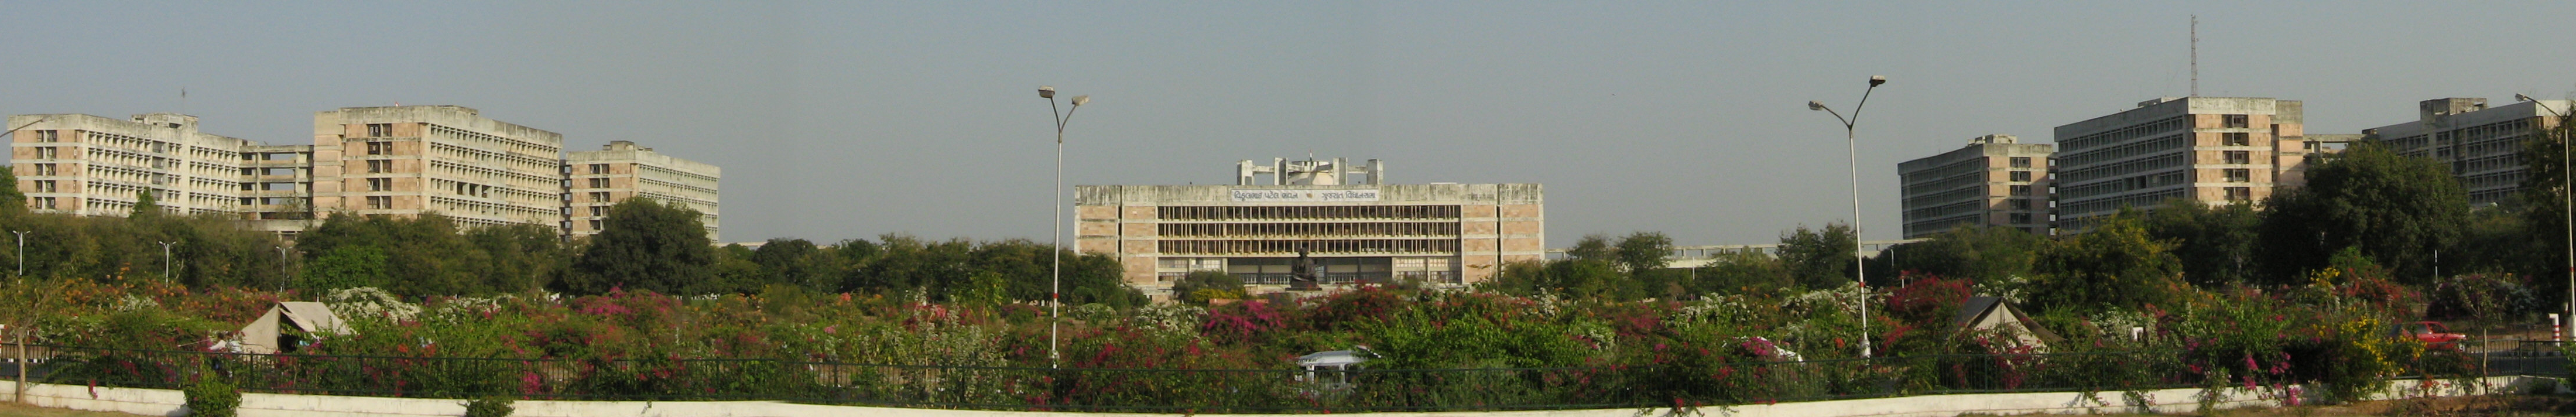 Gandhinagar, the capital of Gujarat State. Picture shown above is of Legislative Assembly and seat of Gujarat Government.